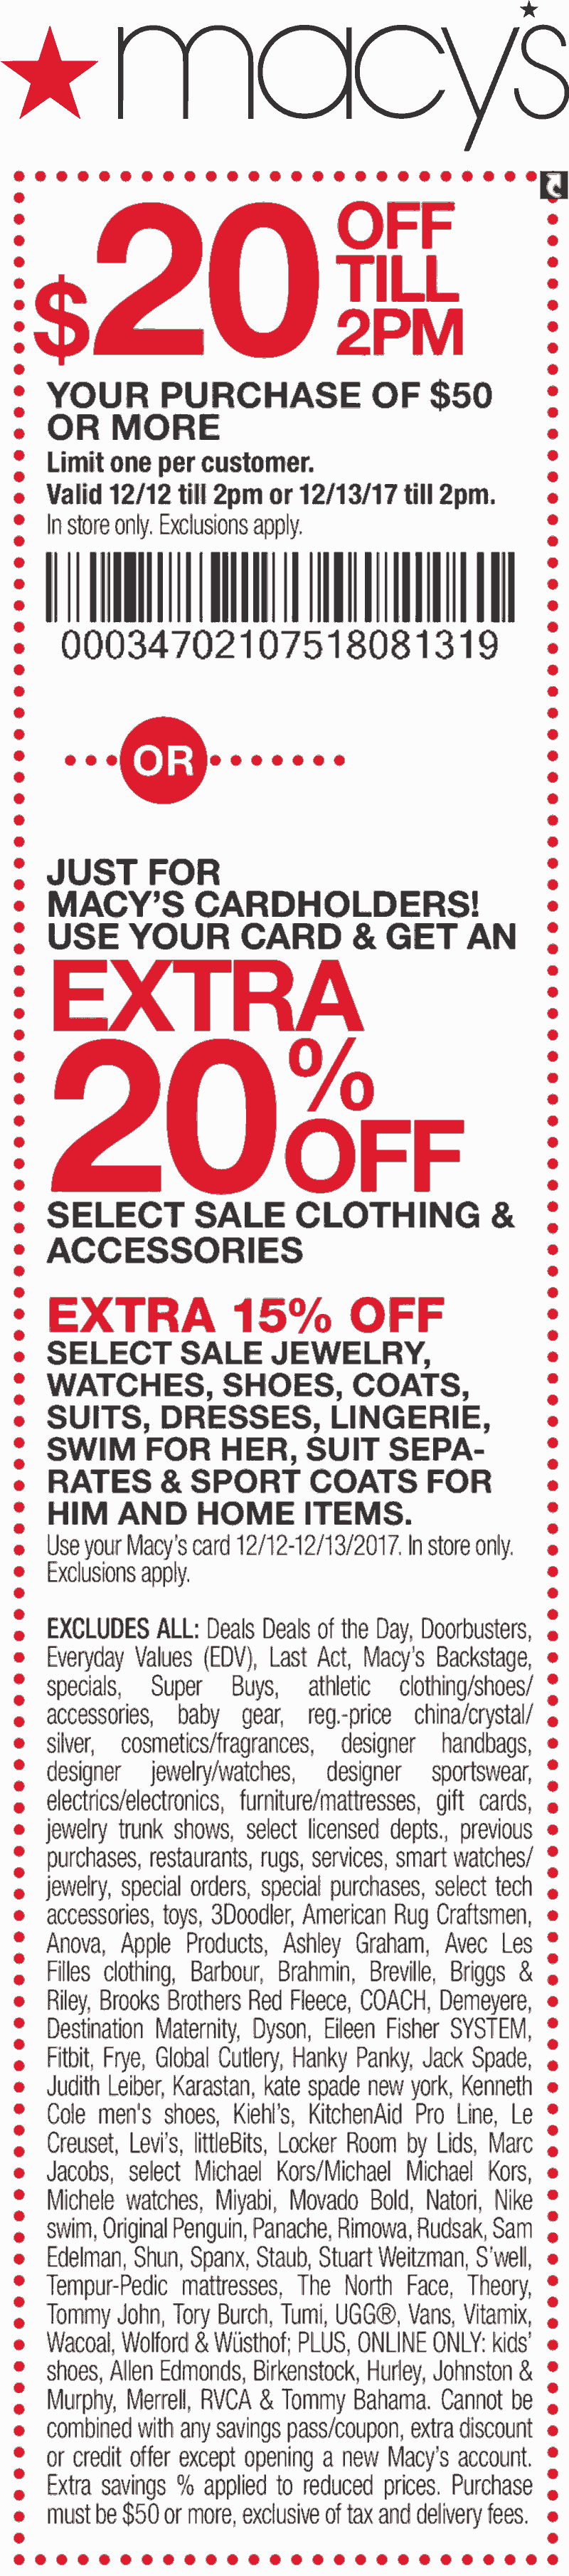 Macys.com Promo Coupon $20 off $50 til 2pm at Macys